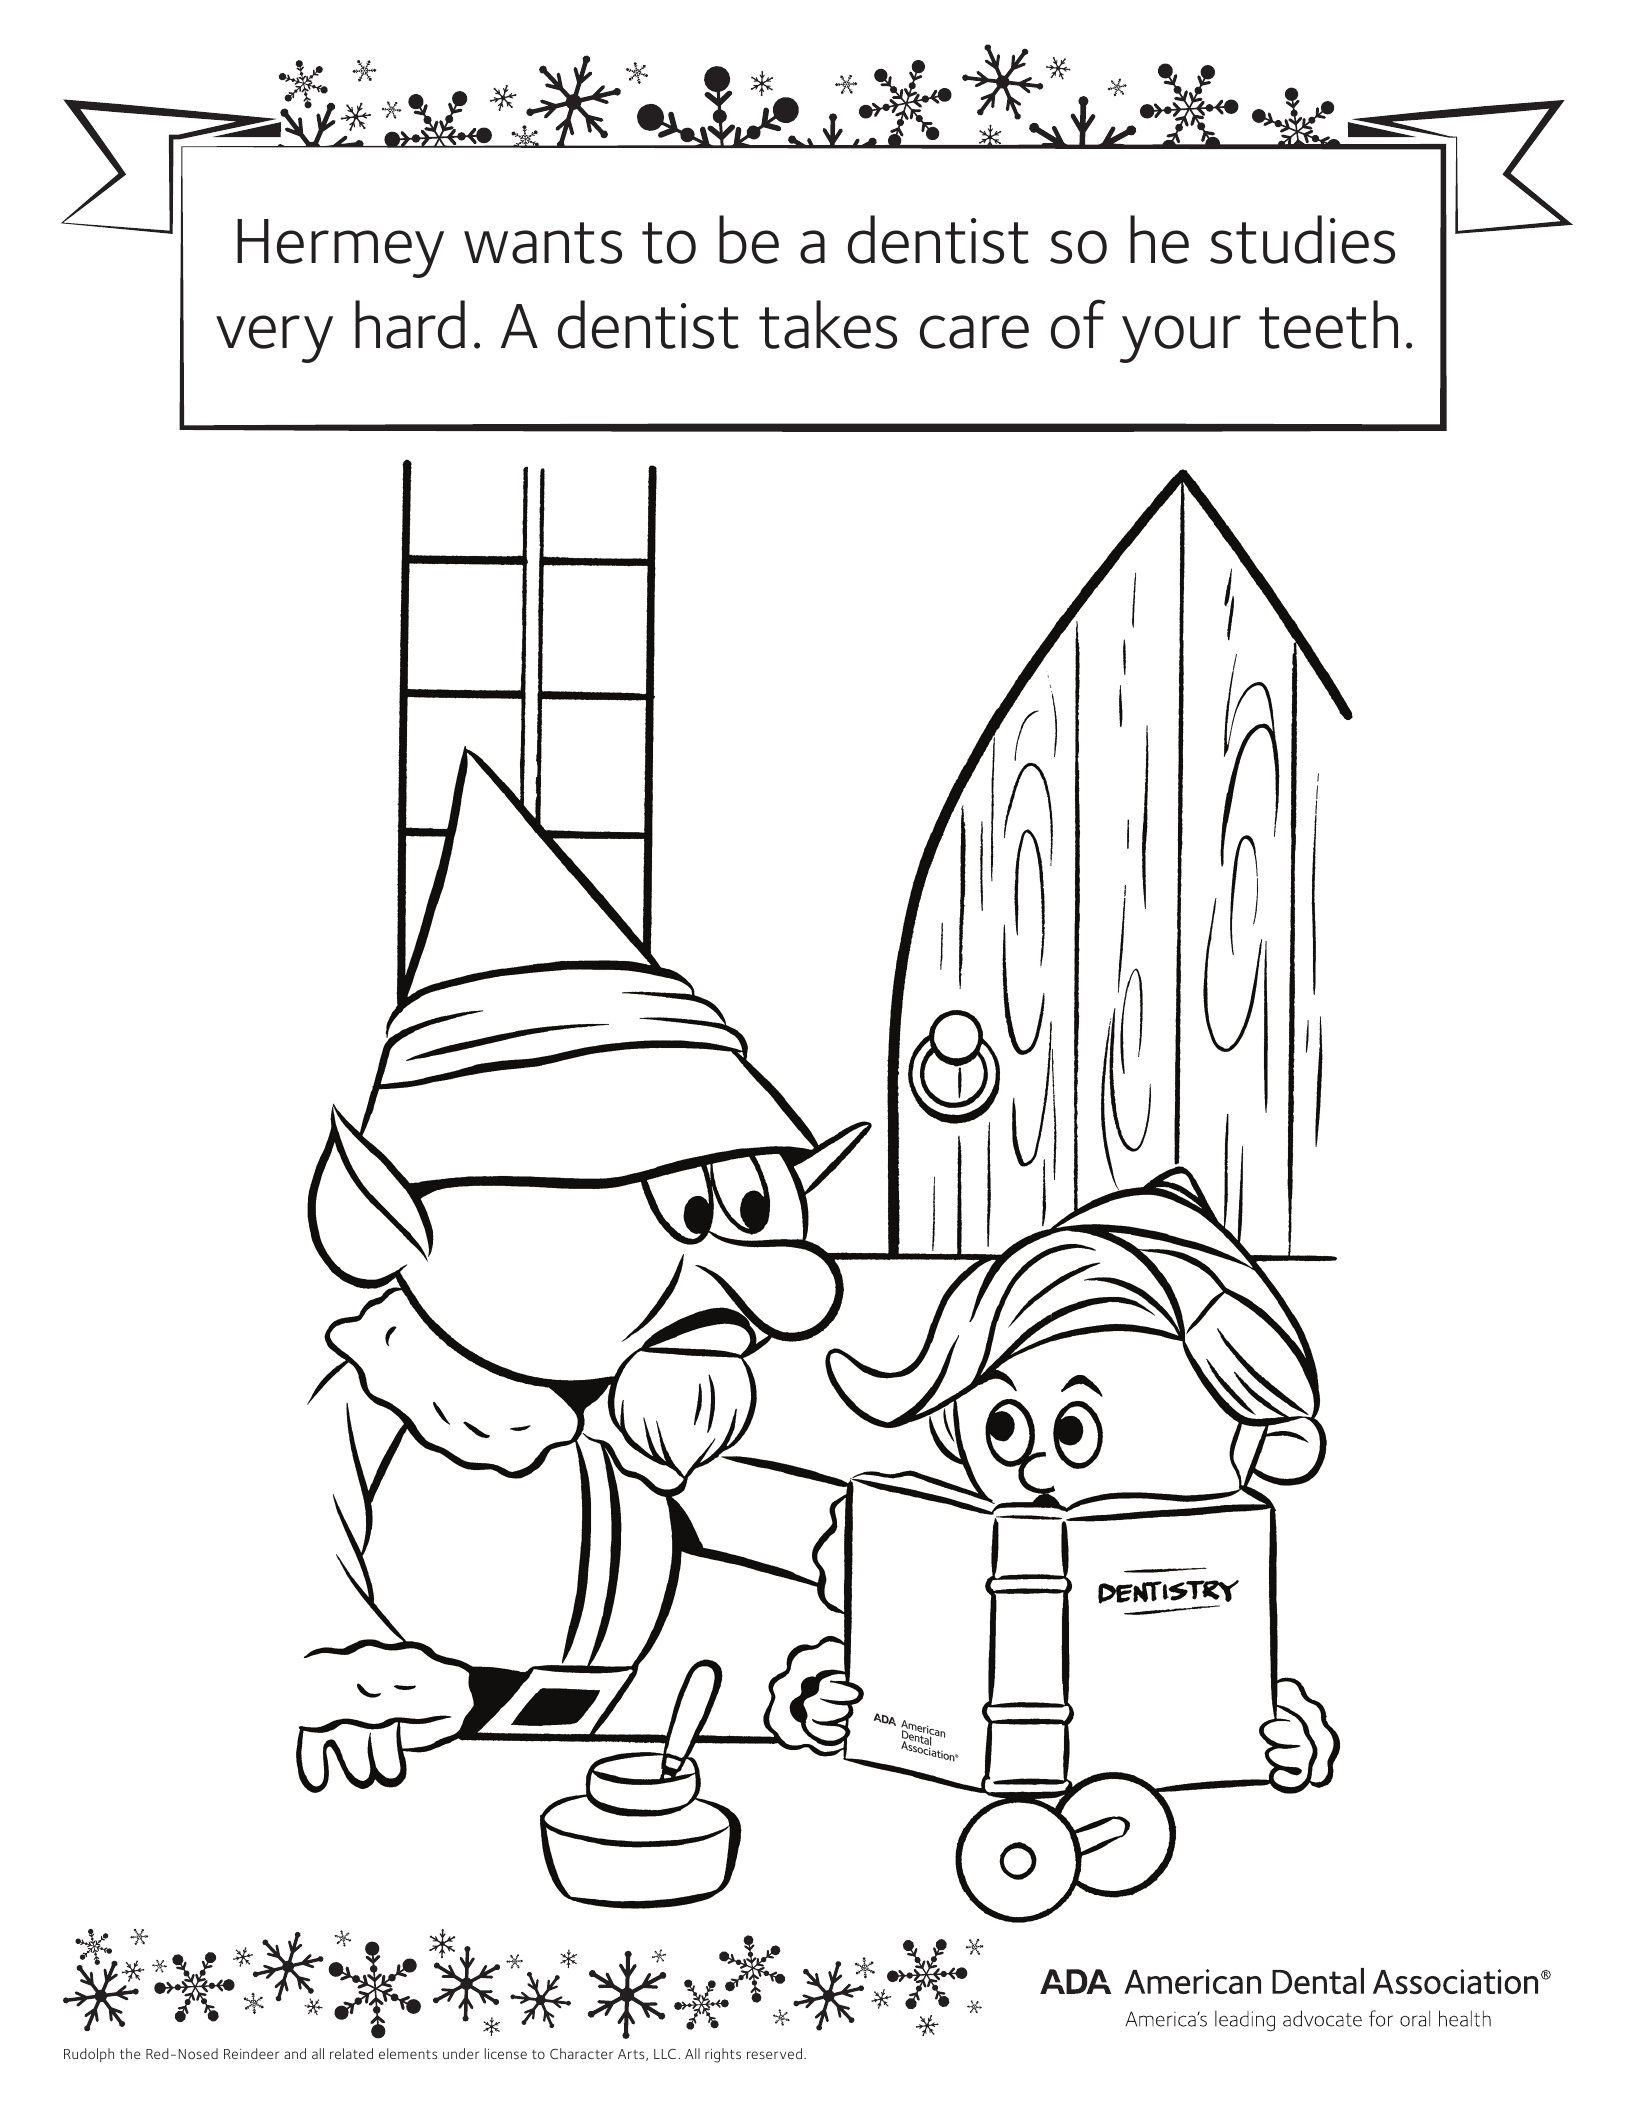 Dental Hygiene Coloring Pages At Getcolorings